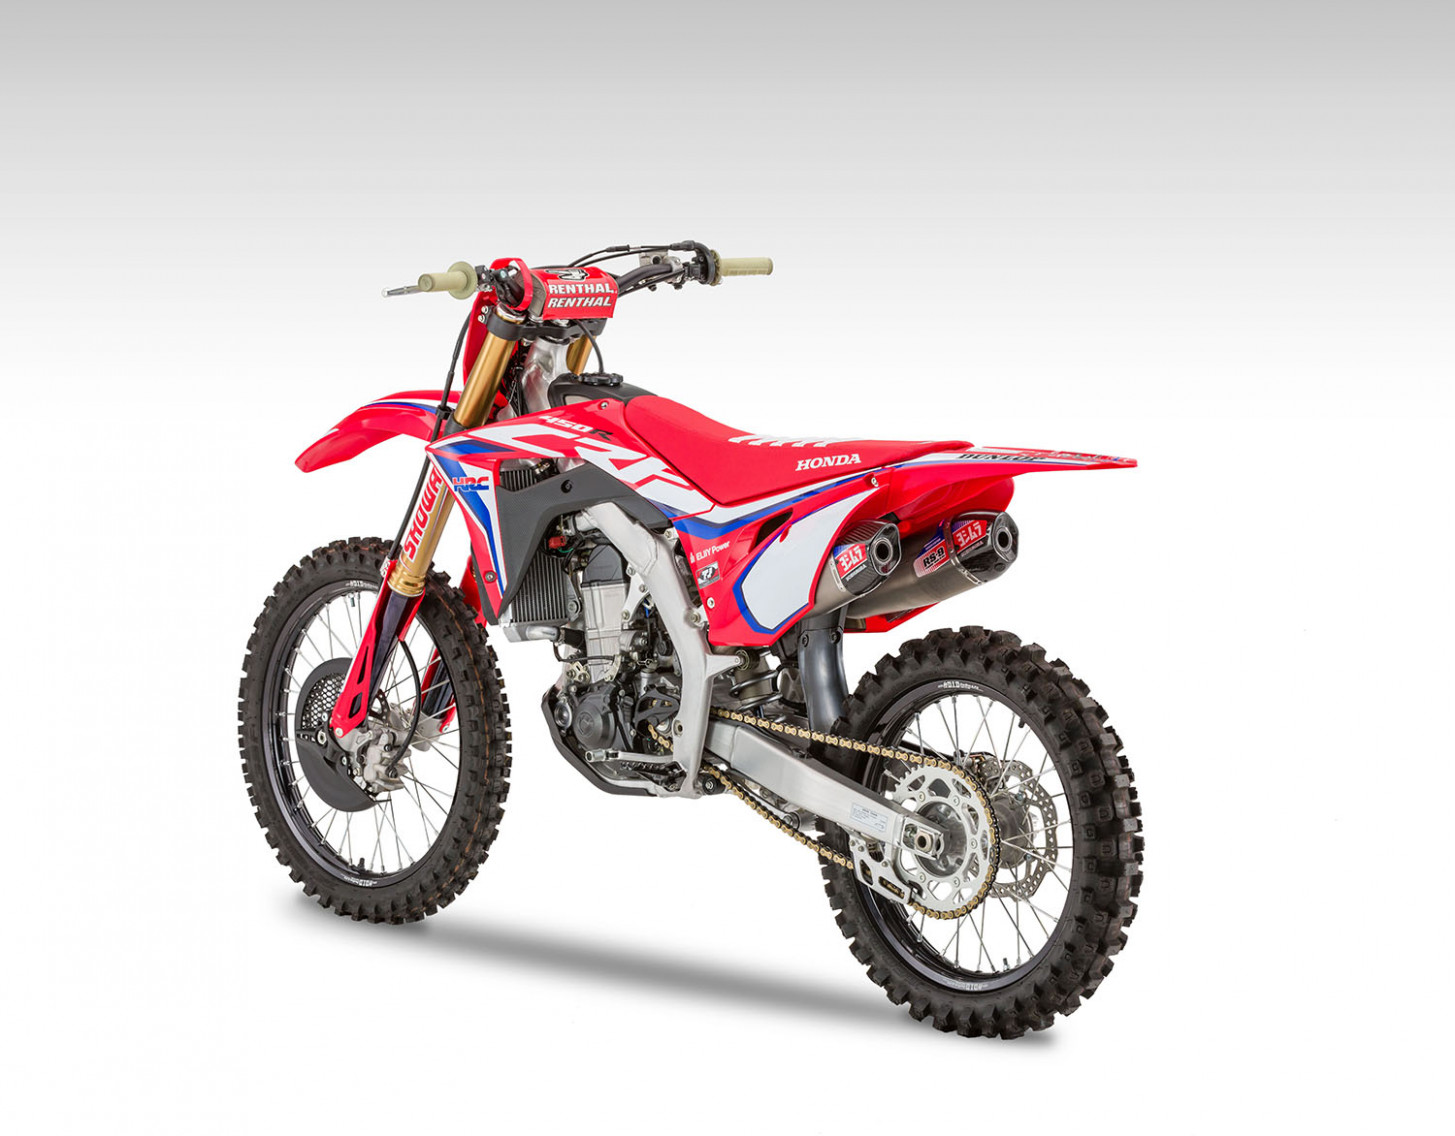 Honda Announces 8 Dirt Bikes - Swapmoto Live - 2020 honda dirt bike models